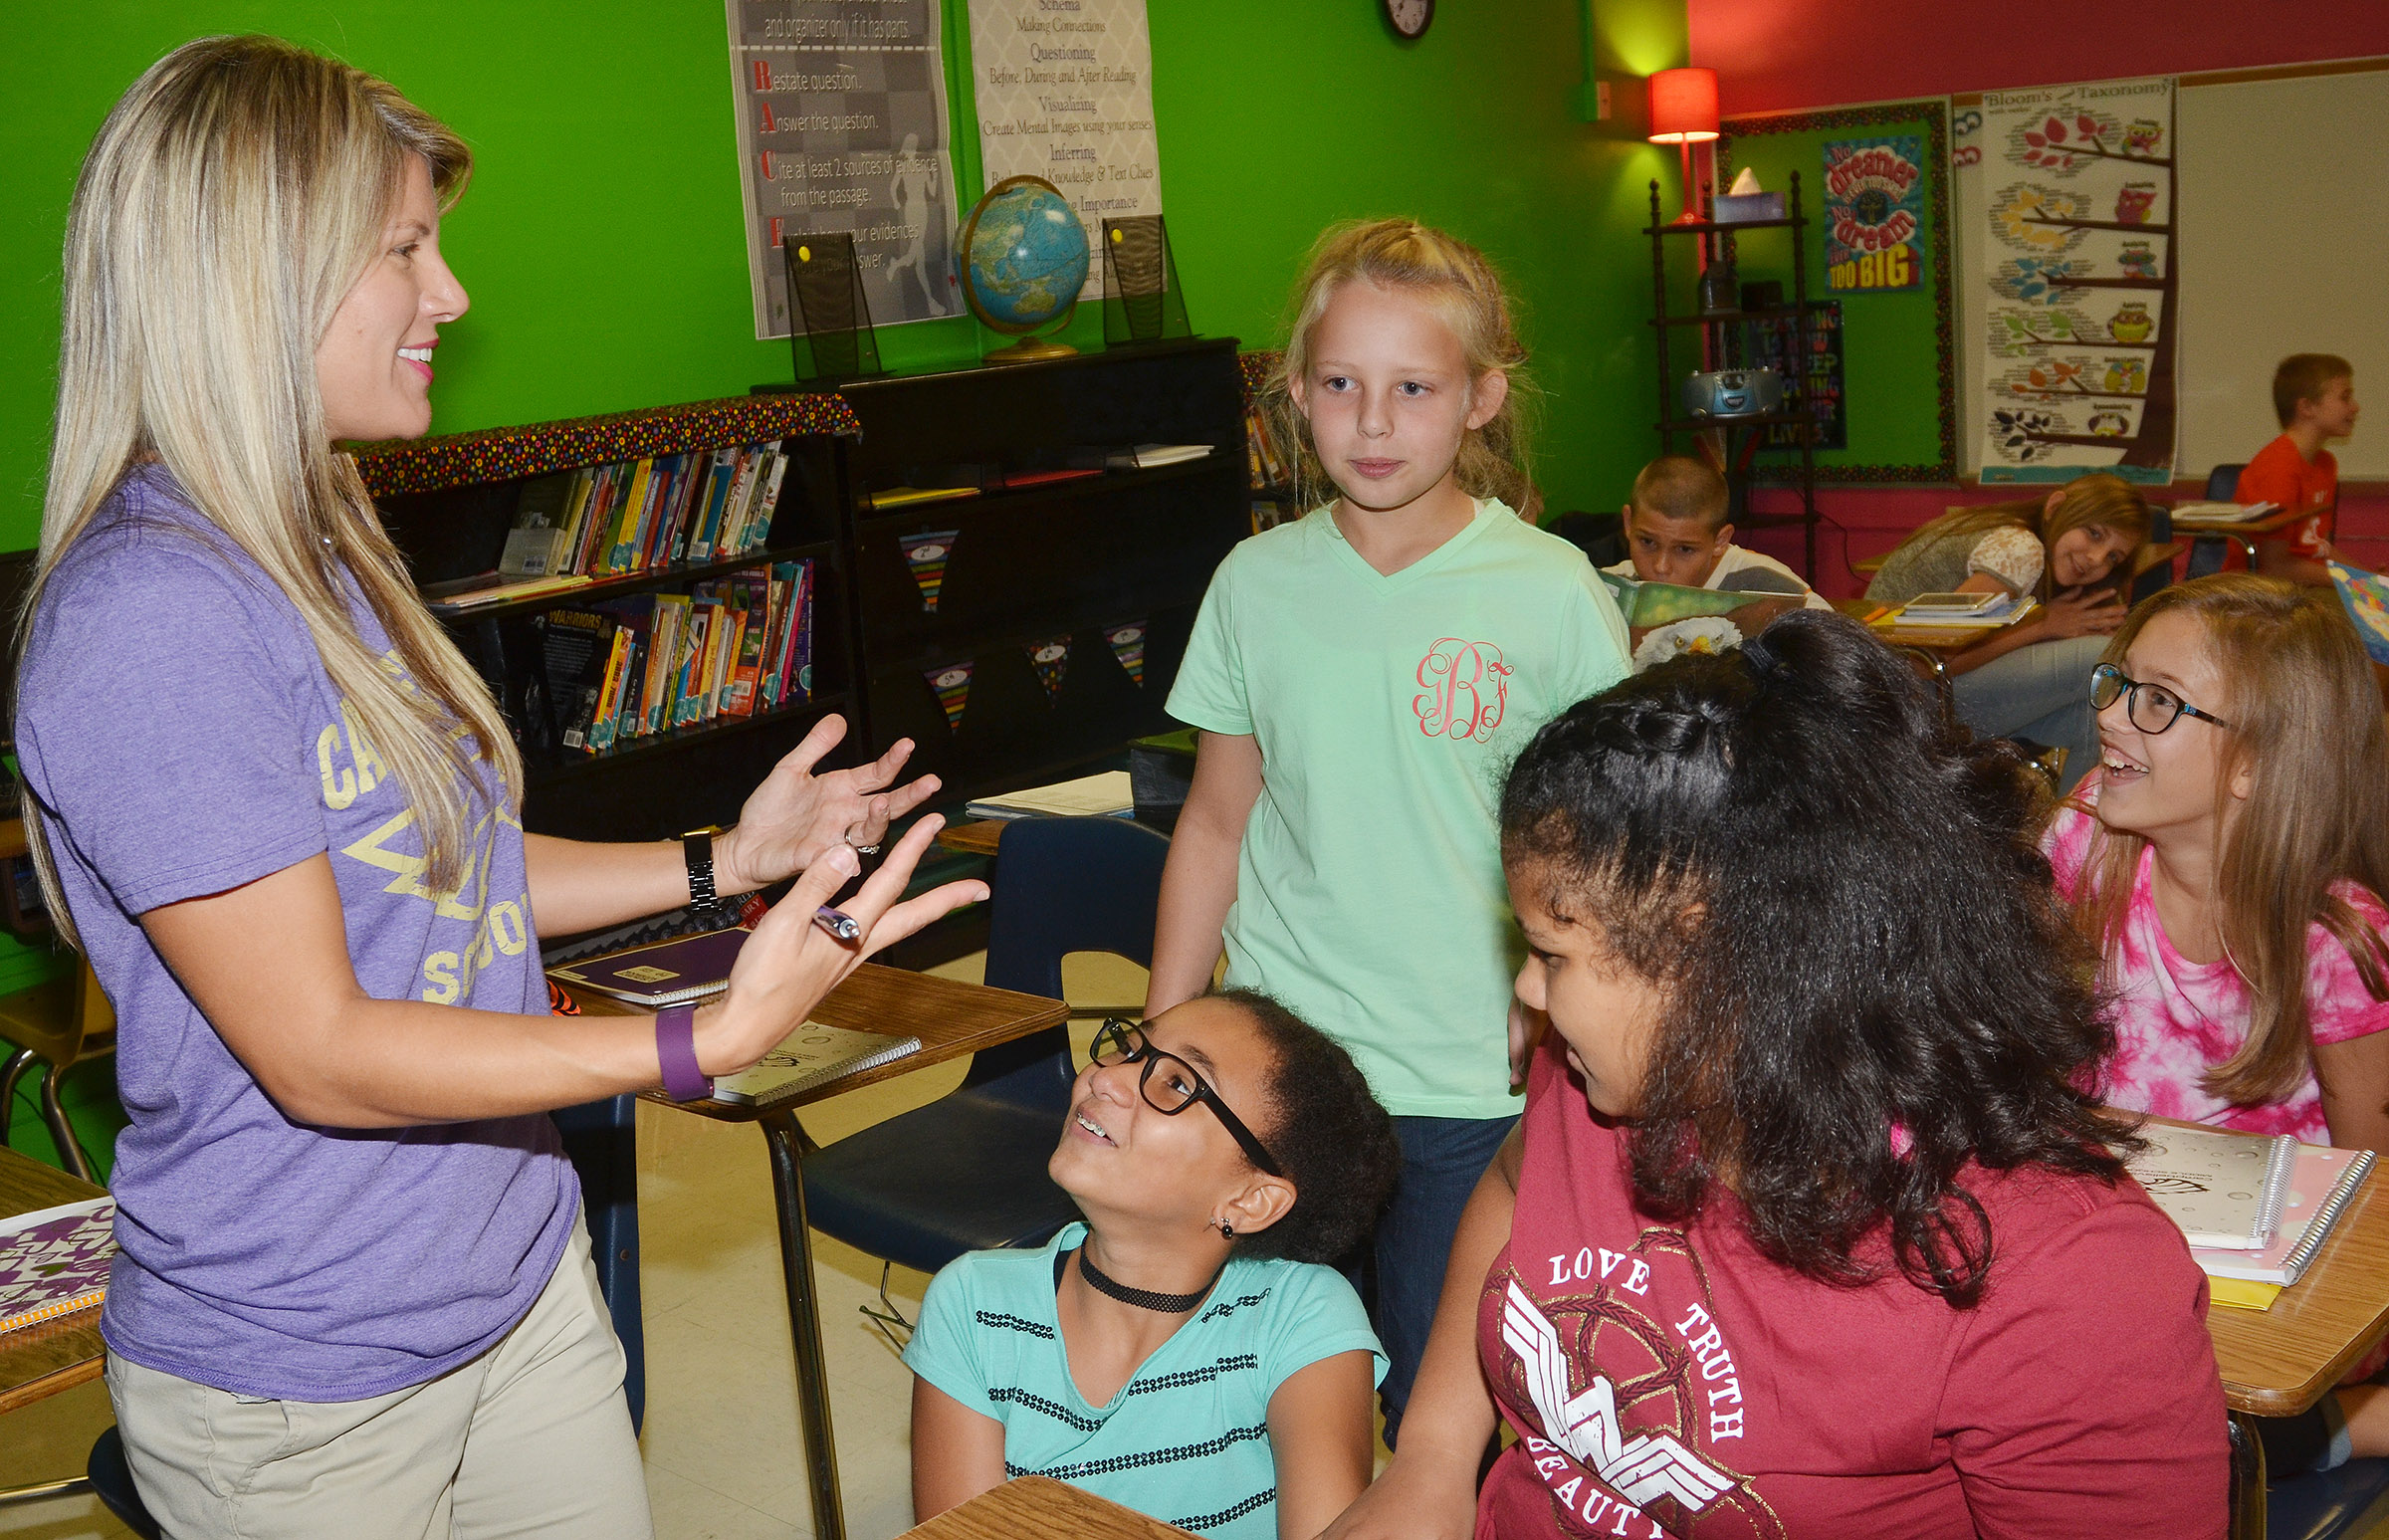 CMS sixth-grade teacher Andrea Gribbins talks with students, from left, Keely Thompson, Gabrielle Bright, Kehleigh Vaught and Chloe Thompson.